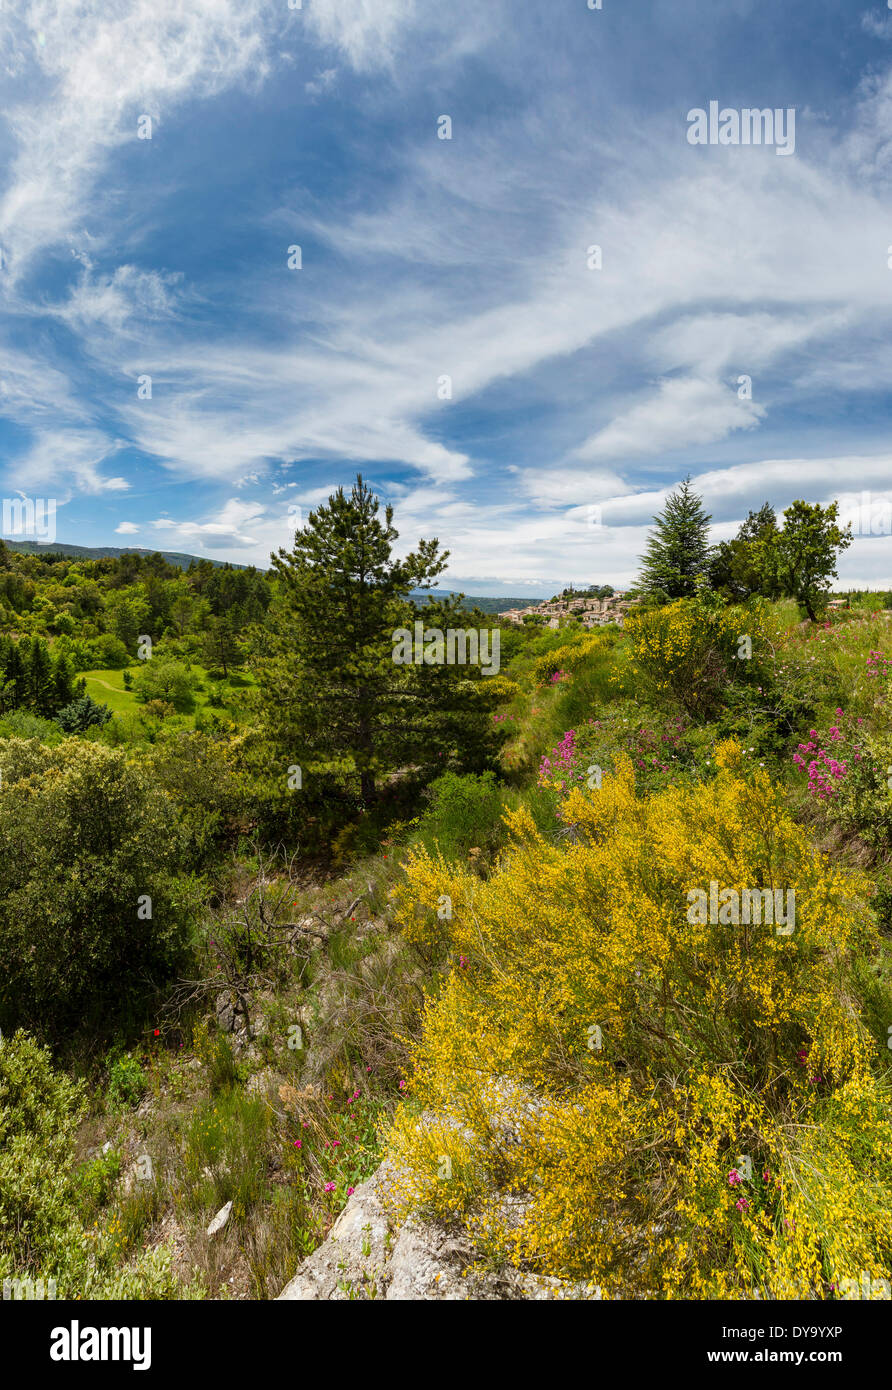 vue, town, village, forest, wood, trees, spring, mountains, hills, Bonnieux, Vaucluse, France, Europe, - Stock Image